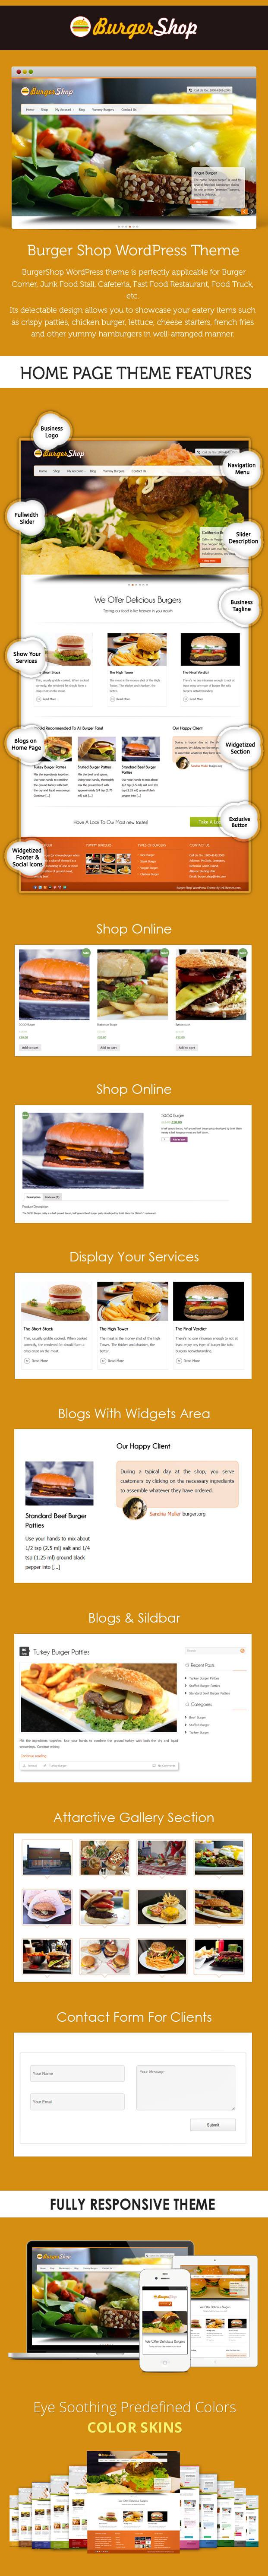 Burger Shop WordPress Theme